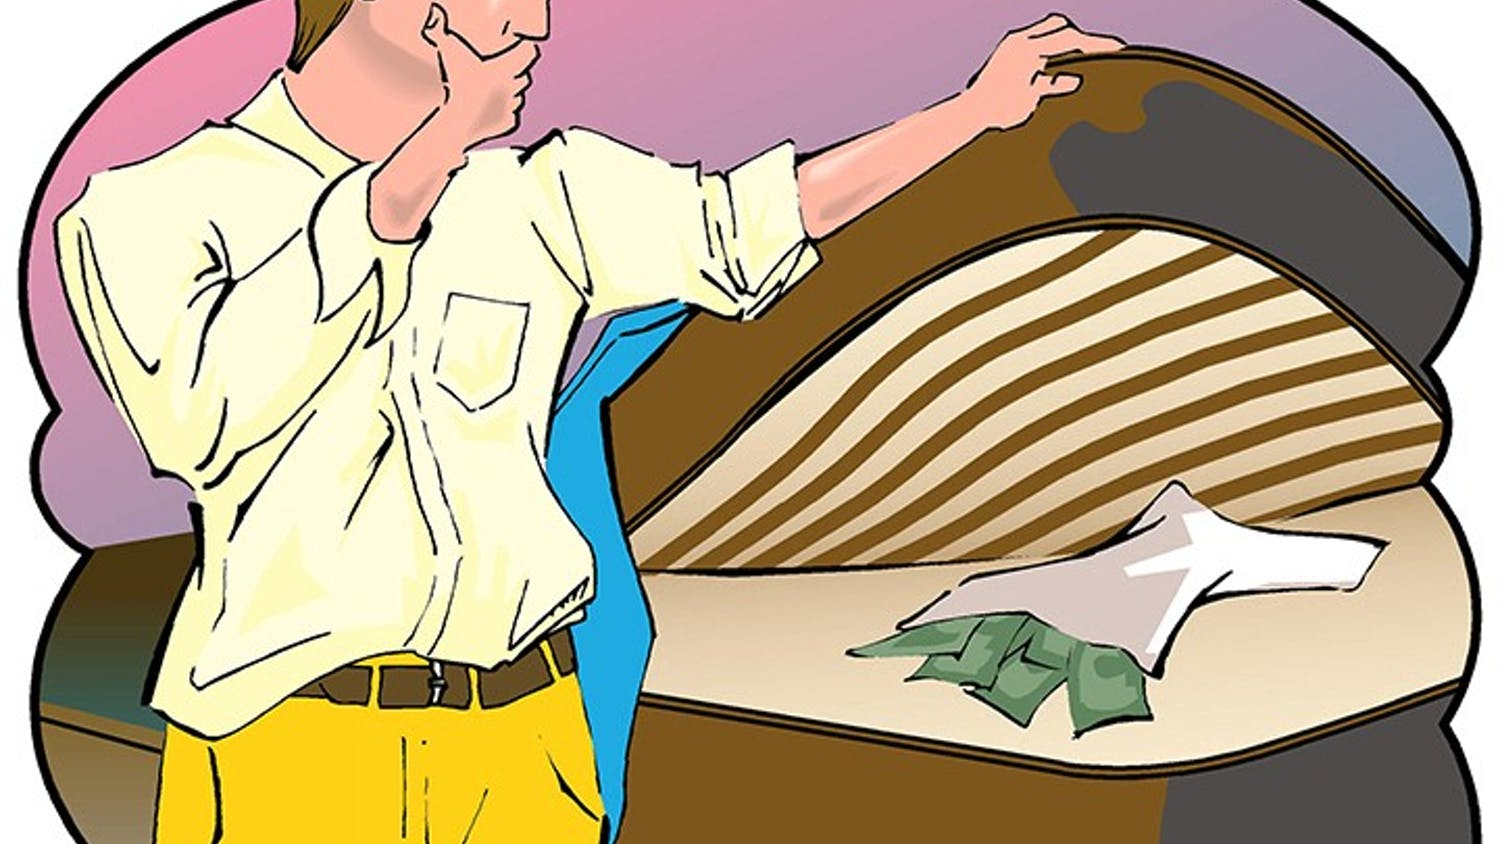 300 dpi Cliff Blair illustration of man hiding money under a mattress. The Tallahassee Democrat 1994